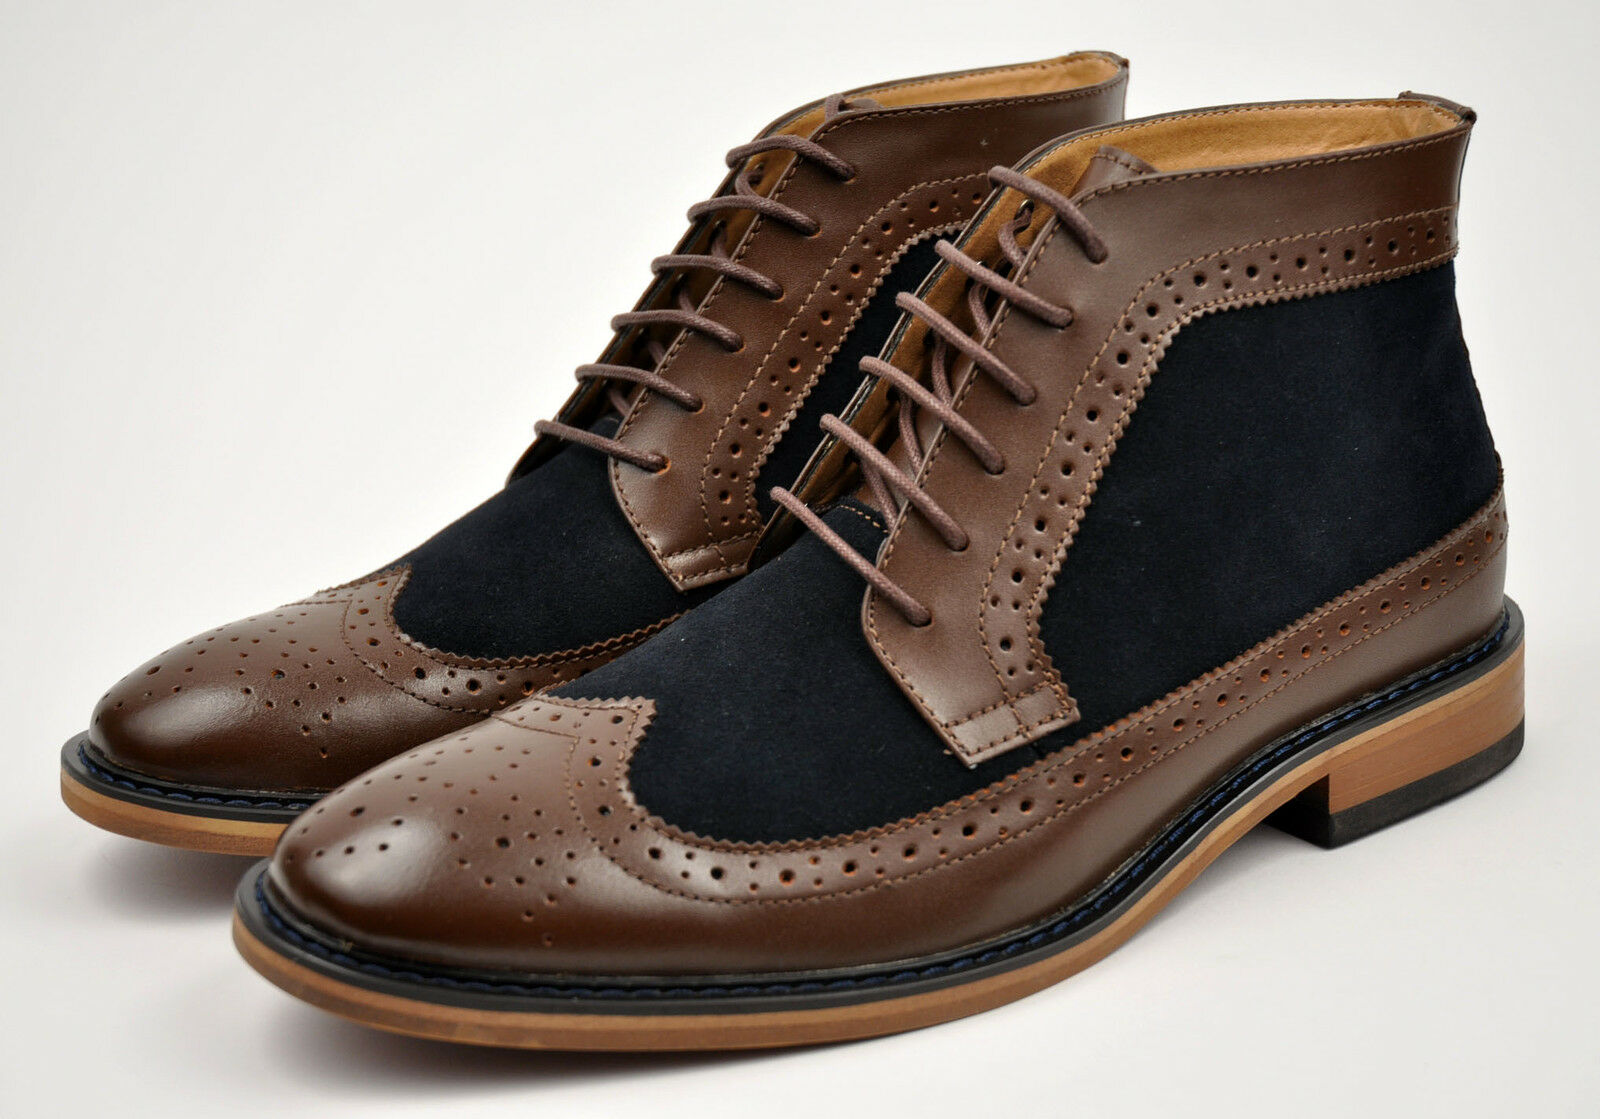 LA MILANO Men's Brown Navy Genuine Leather Fall Winter Dress Boots shoes B5903